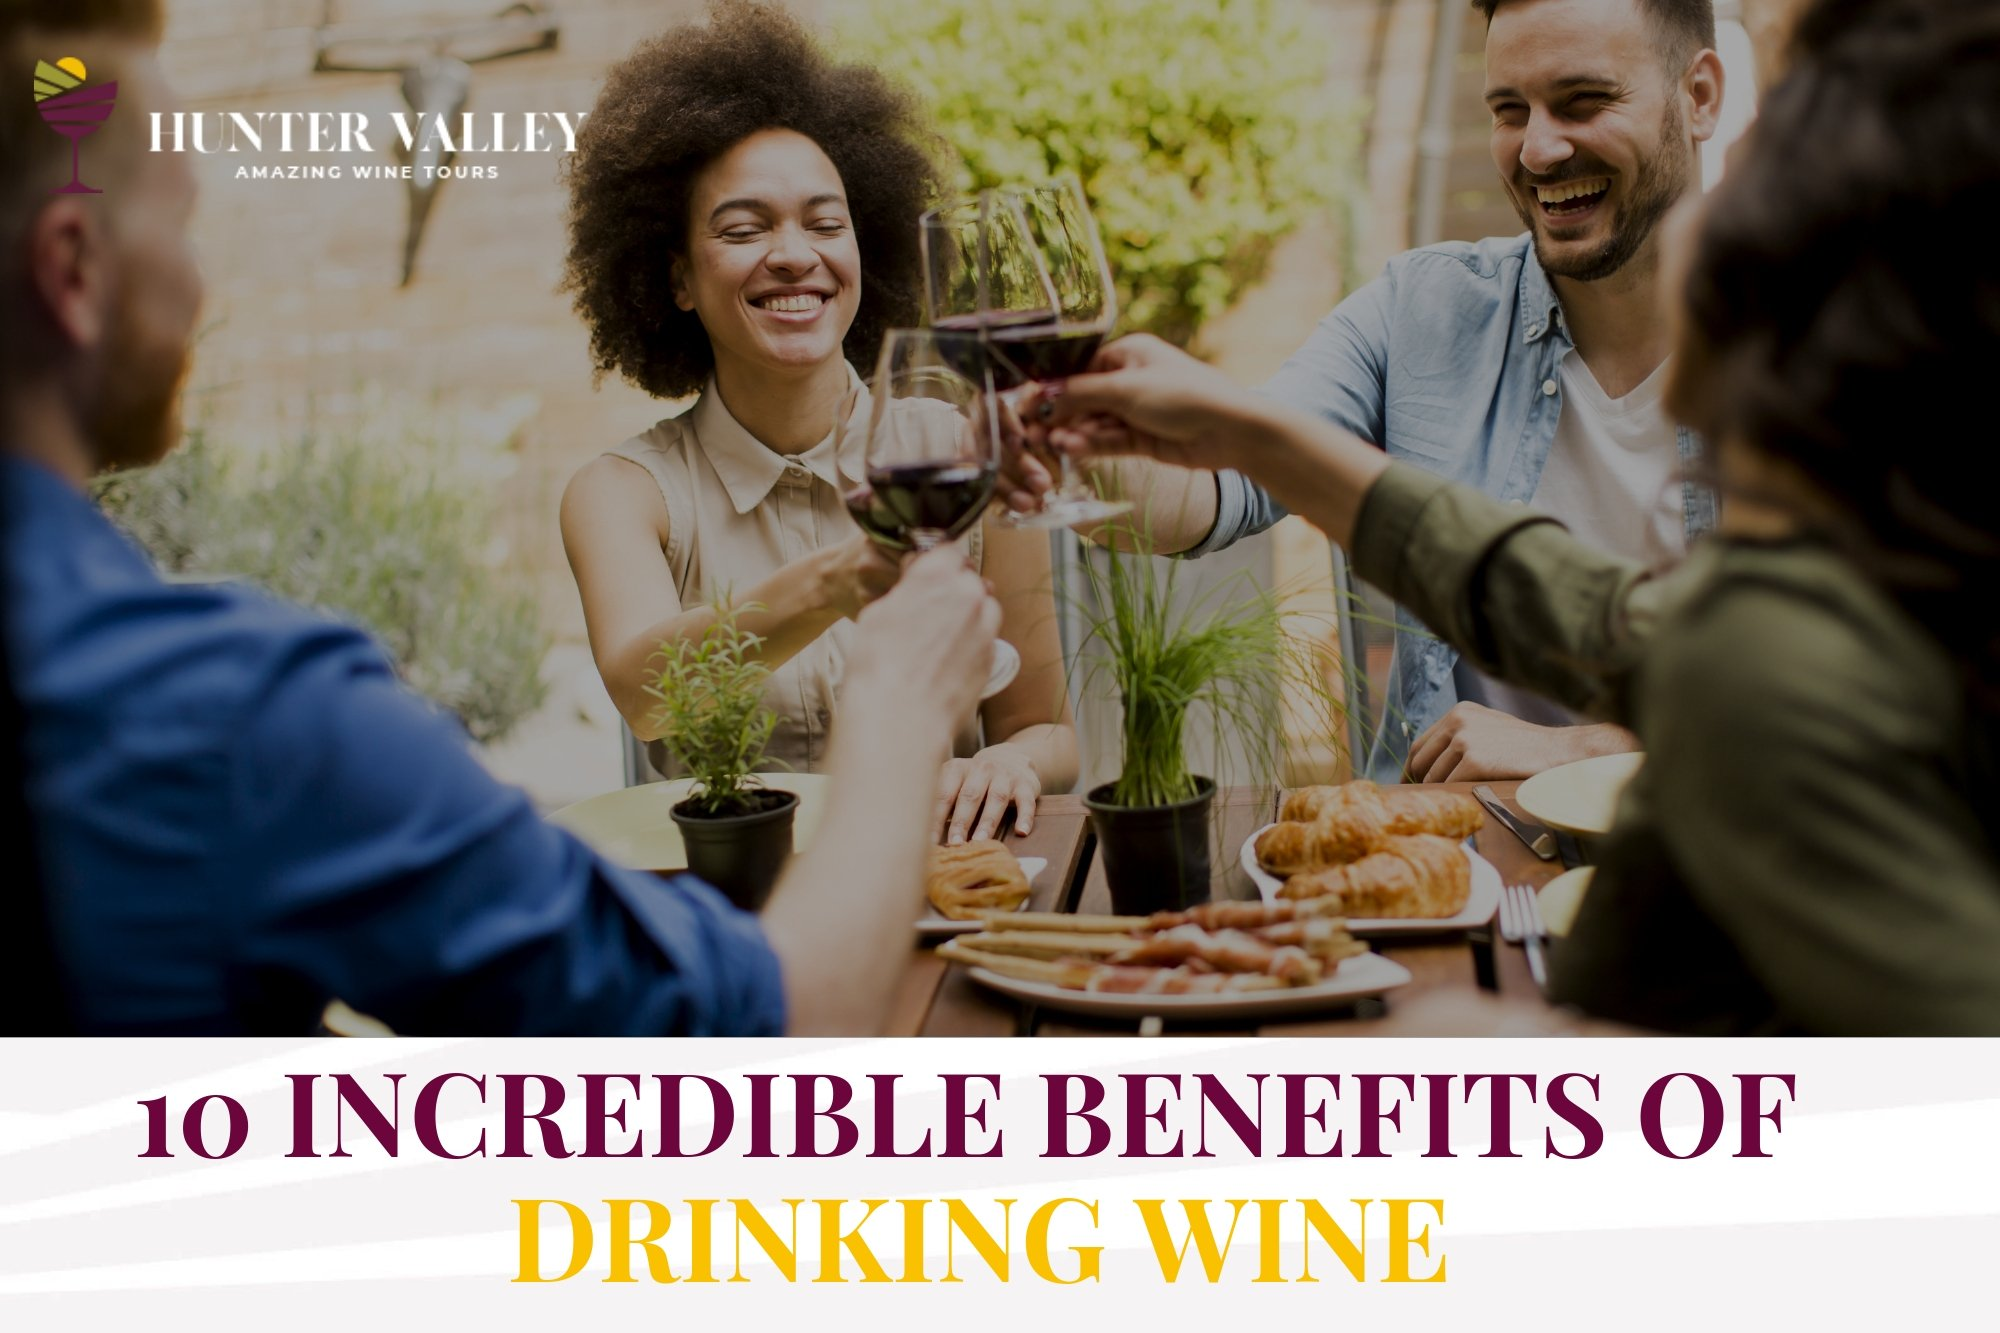 10 Incredible Benefits of Drinking Wine